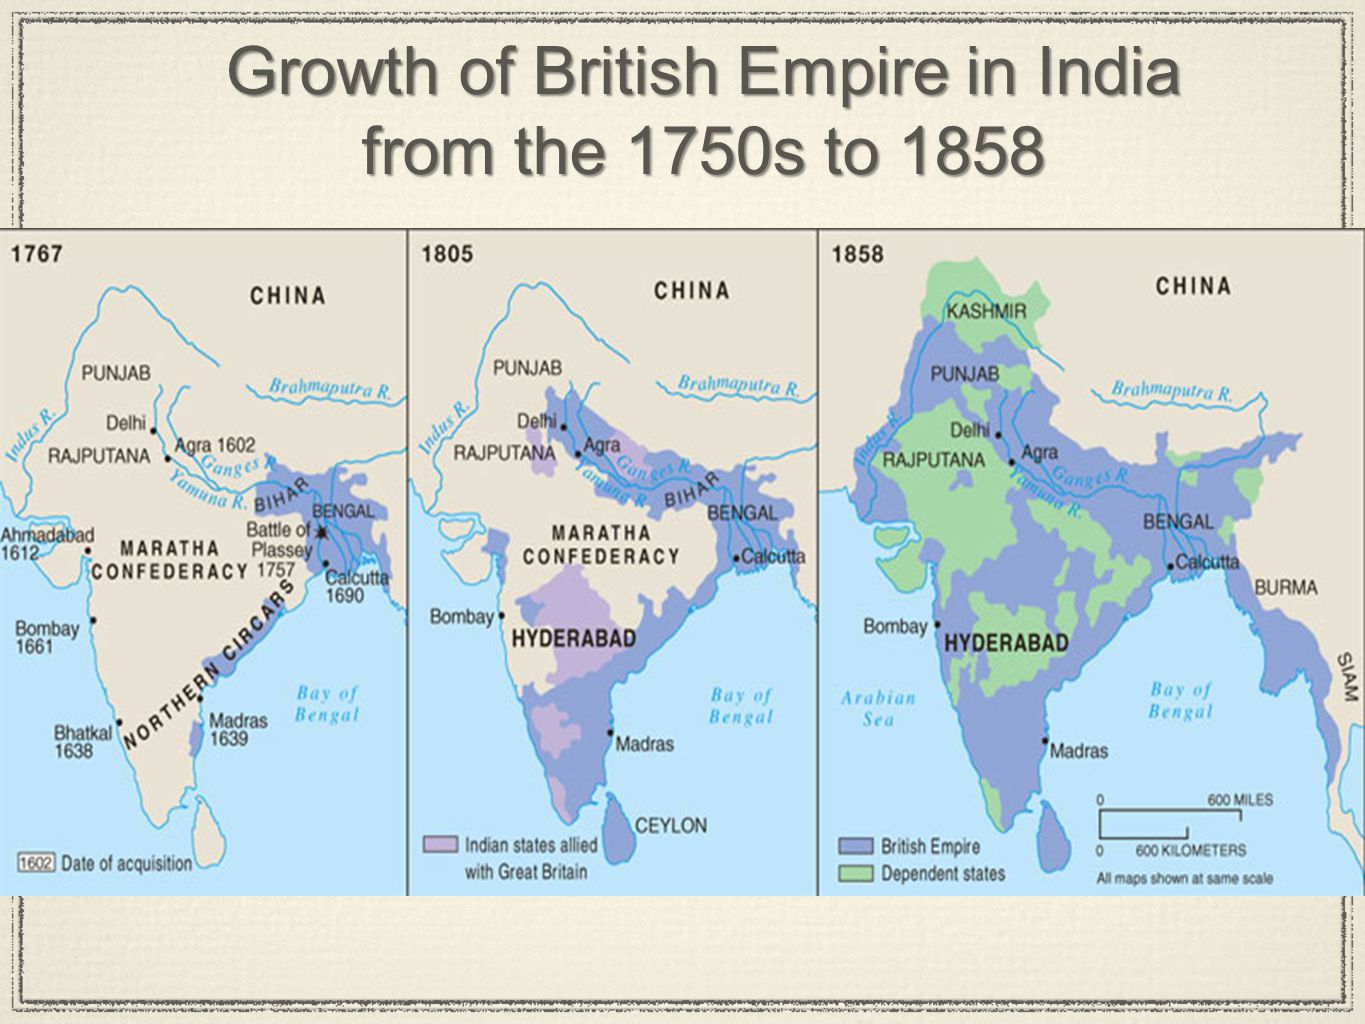 Growth of British Empire in India from the 1750s to 1858